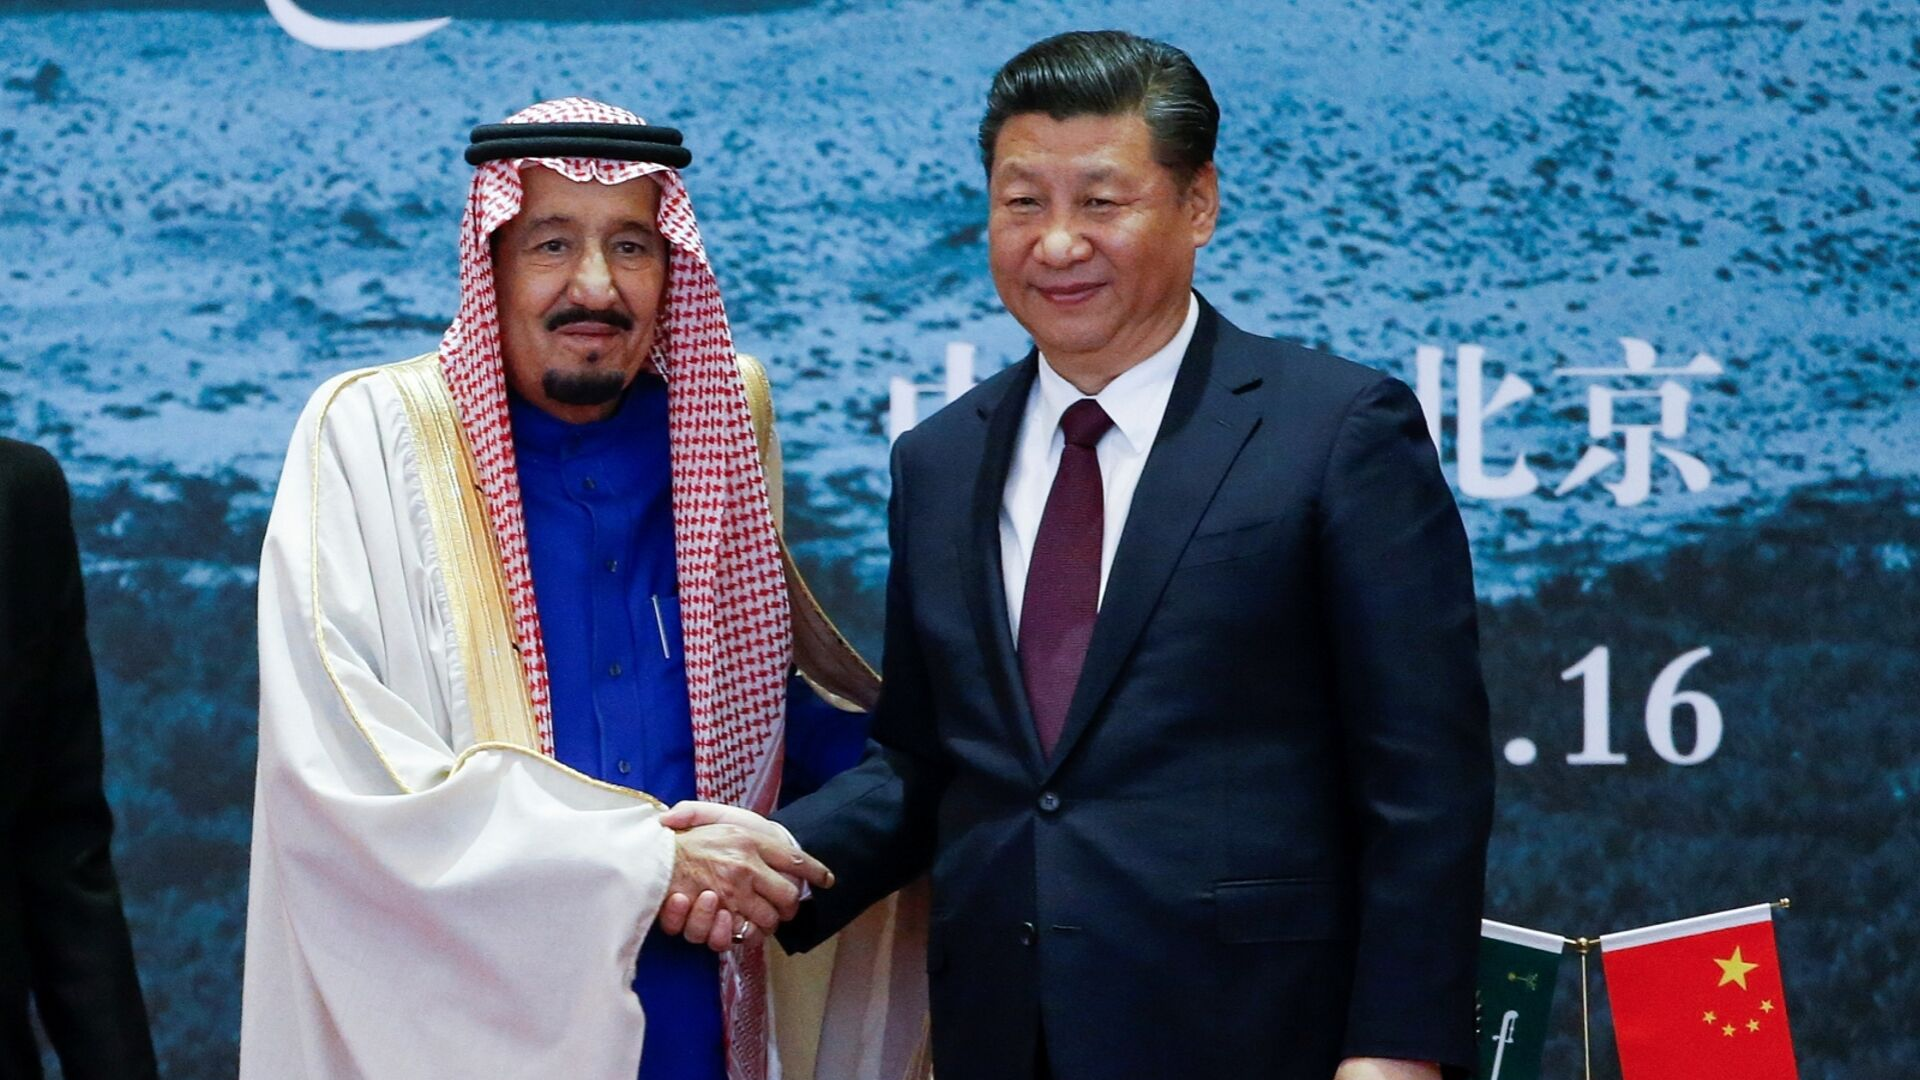 Saudi Arabia is ramping up economic relations with China